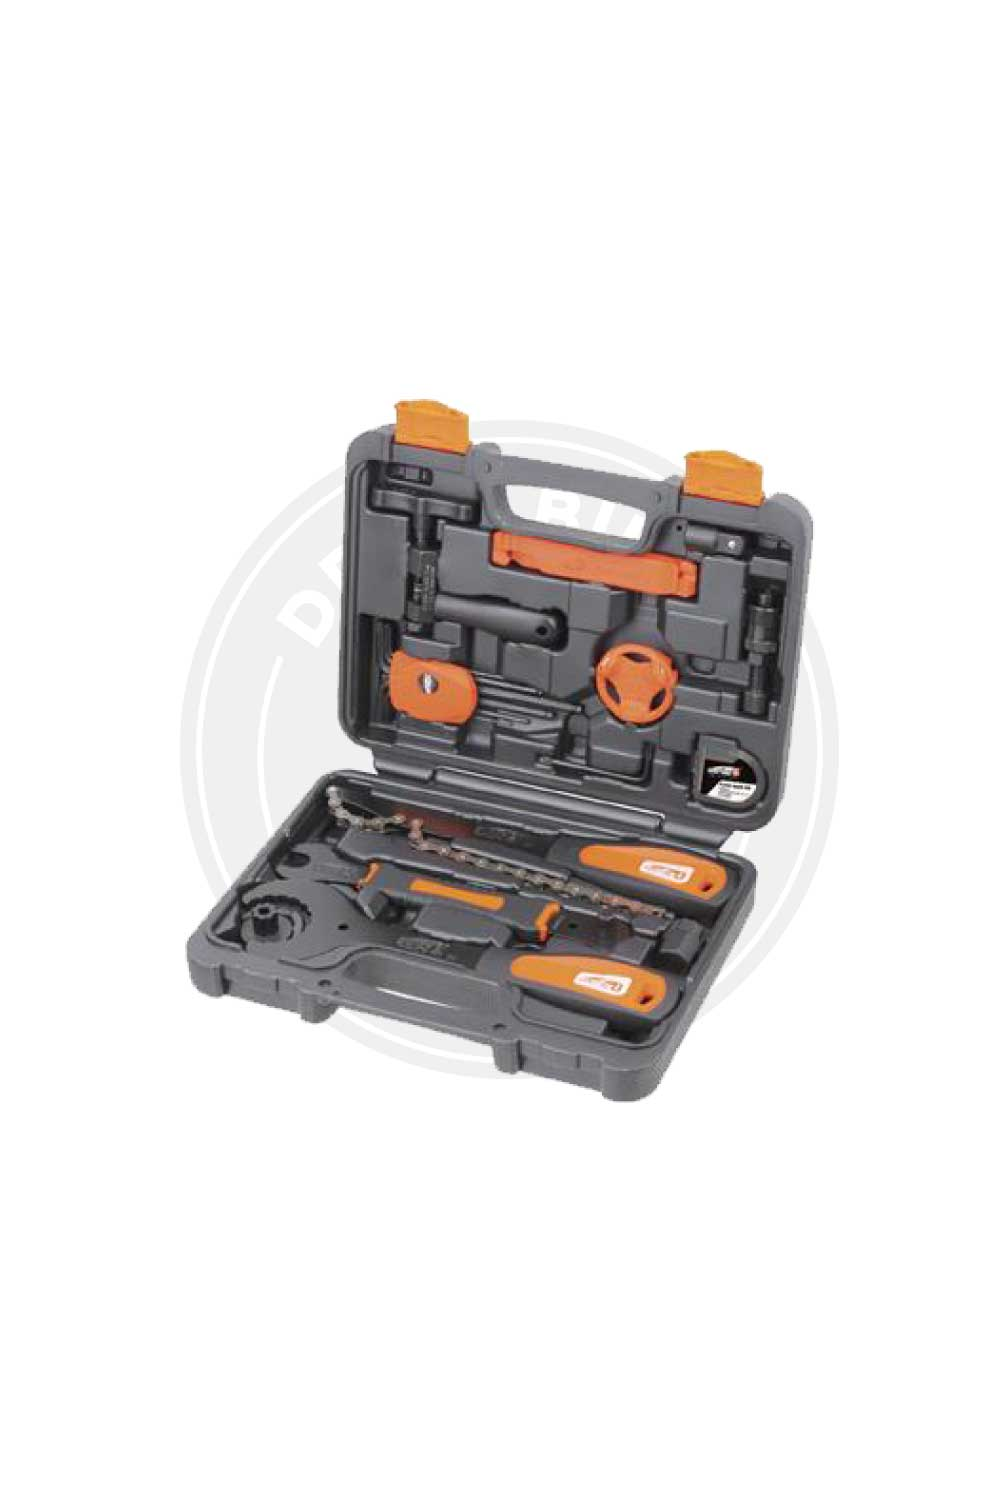 Super B - 21 Piece Tool Set With Case